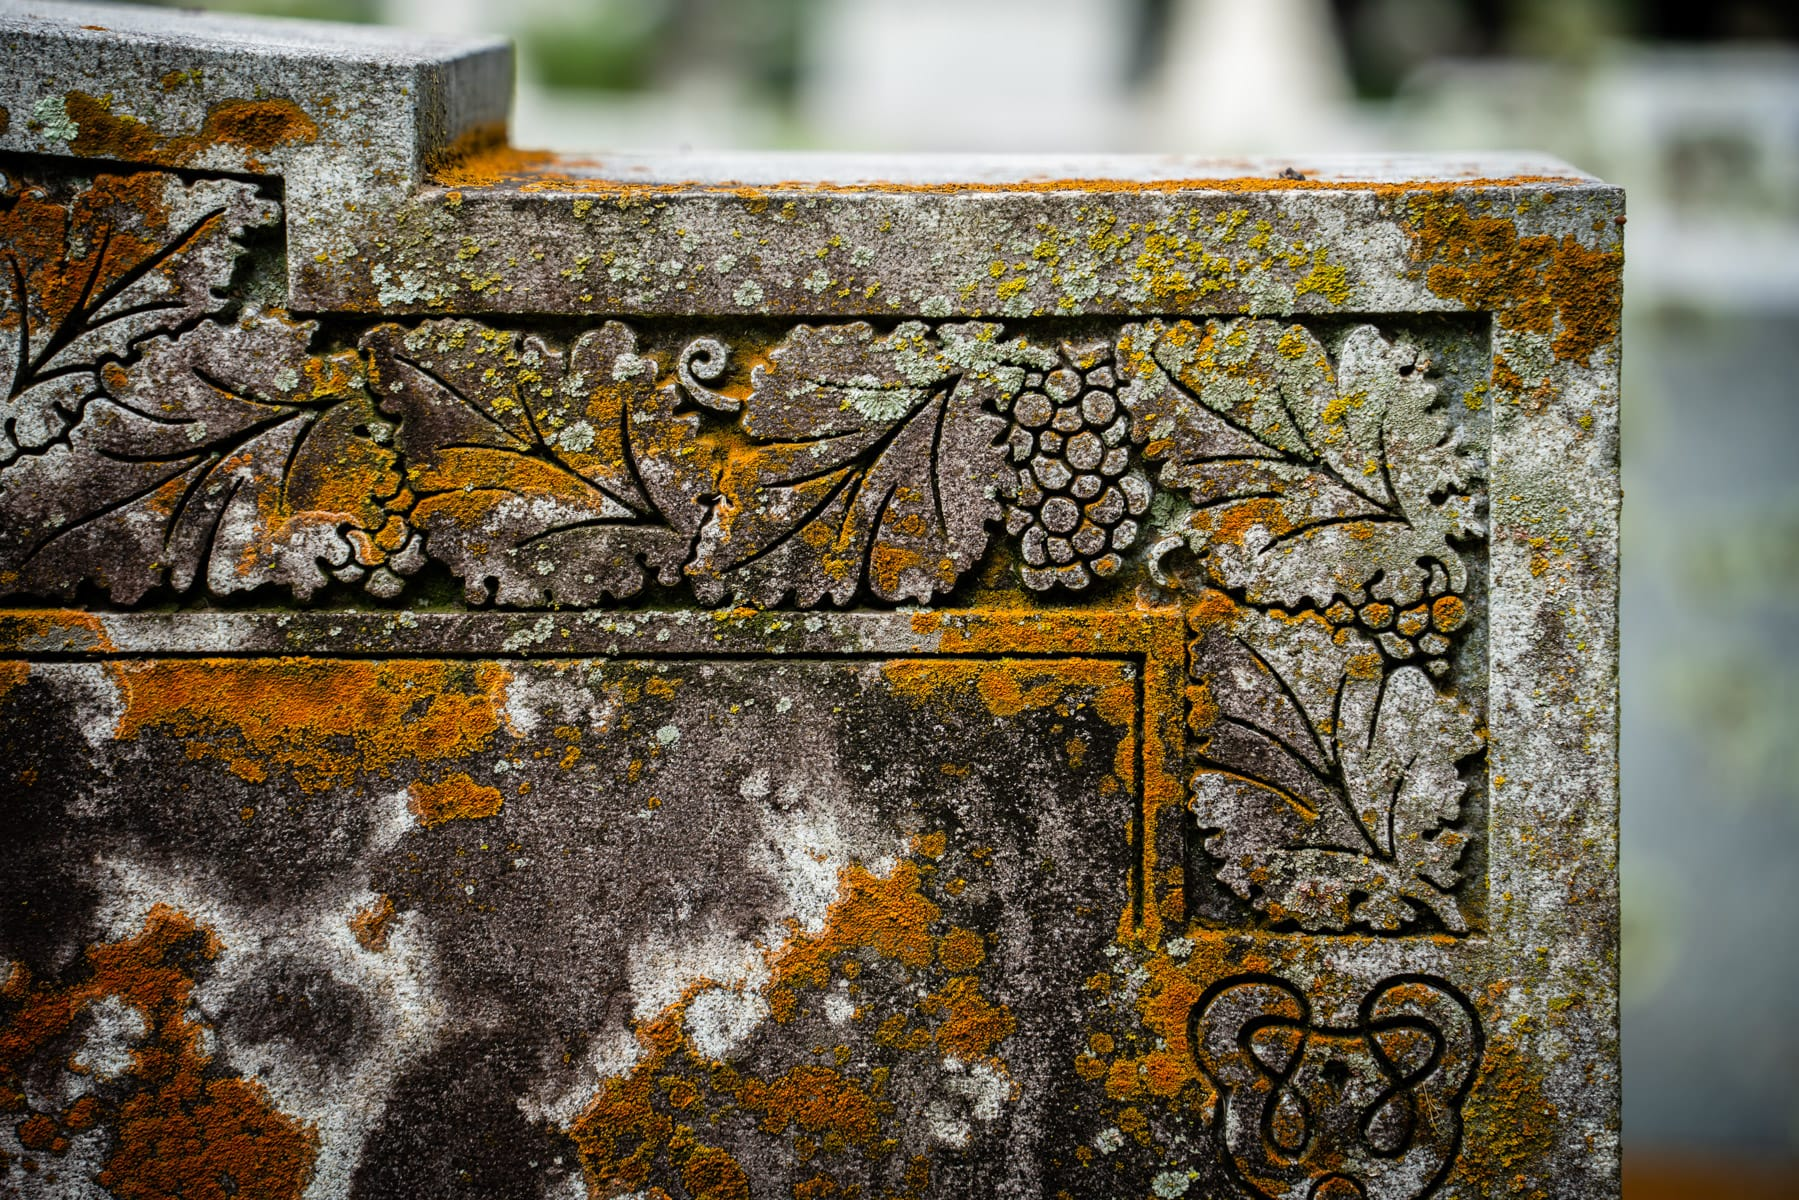 Lichens grow on a headstone at McKinney, Texas' Pecan Grove Cemetery.